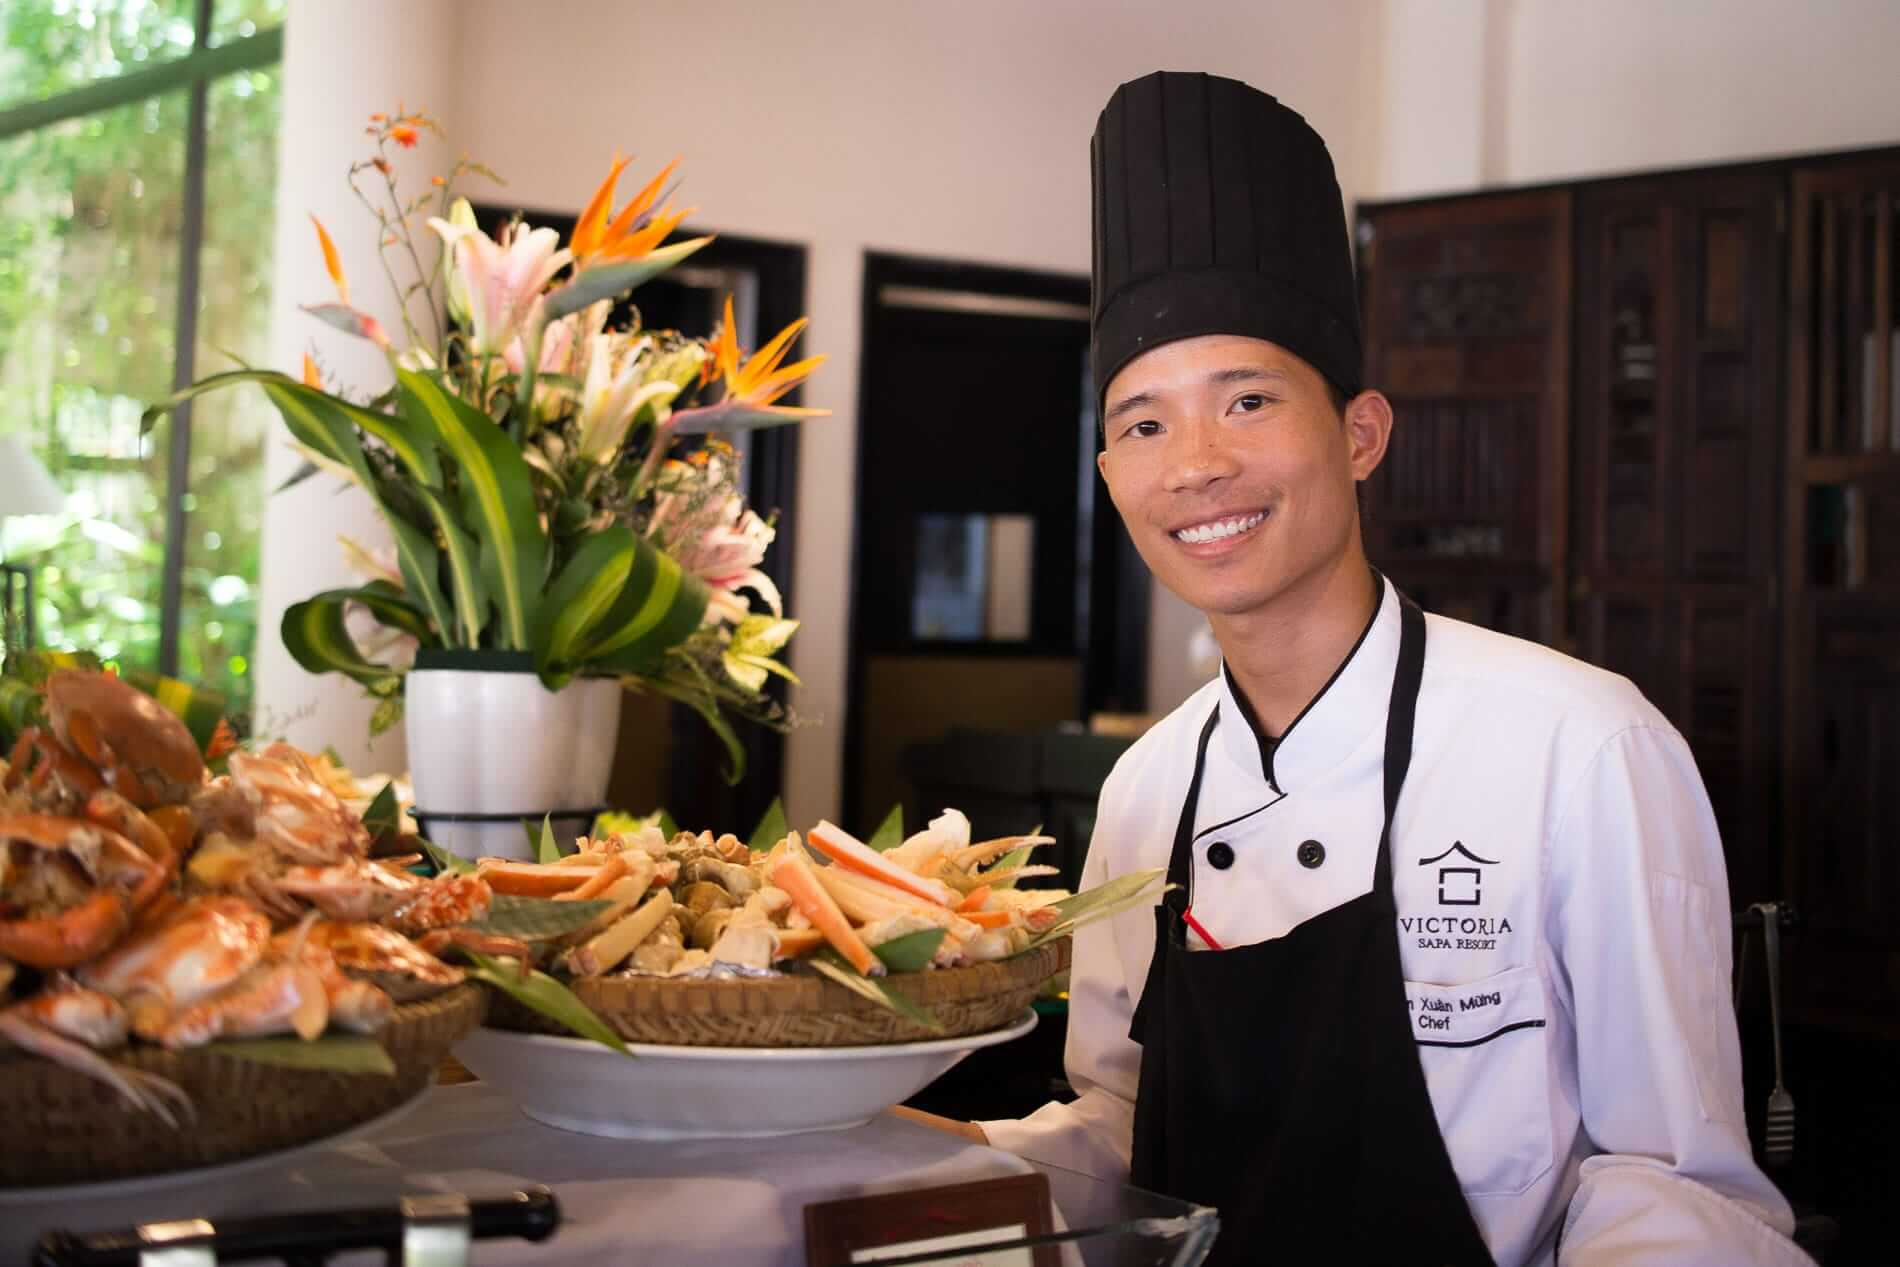 A chef poses for VIctoria Resort Hoi An